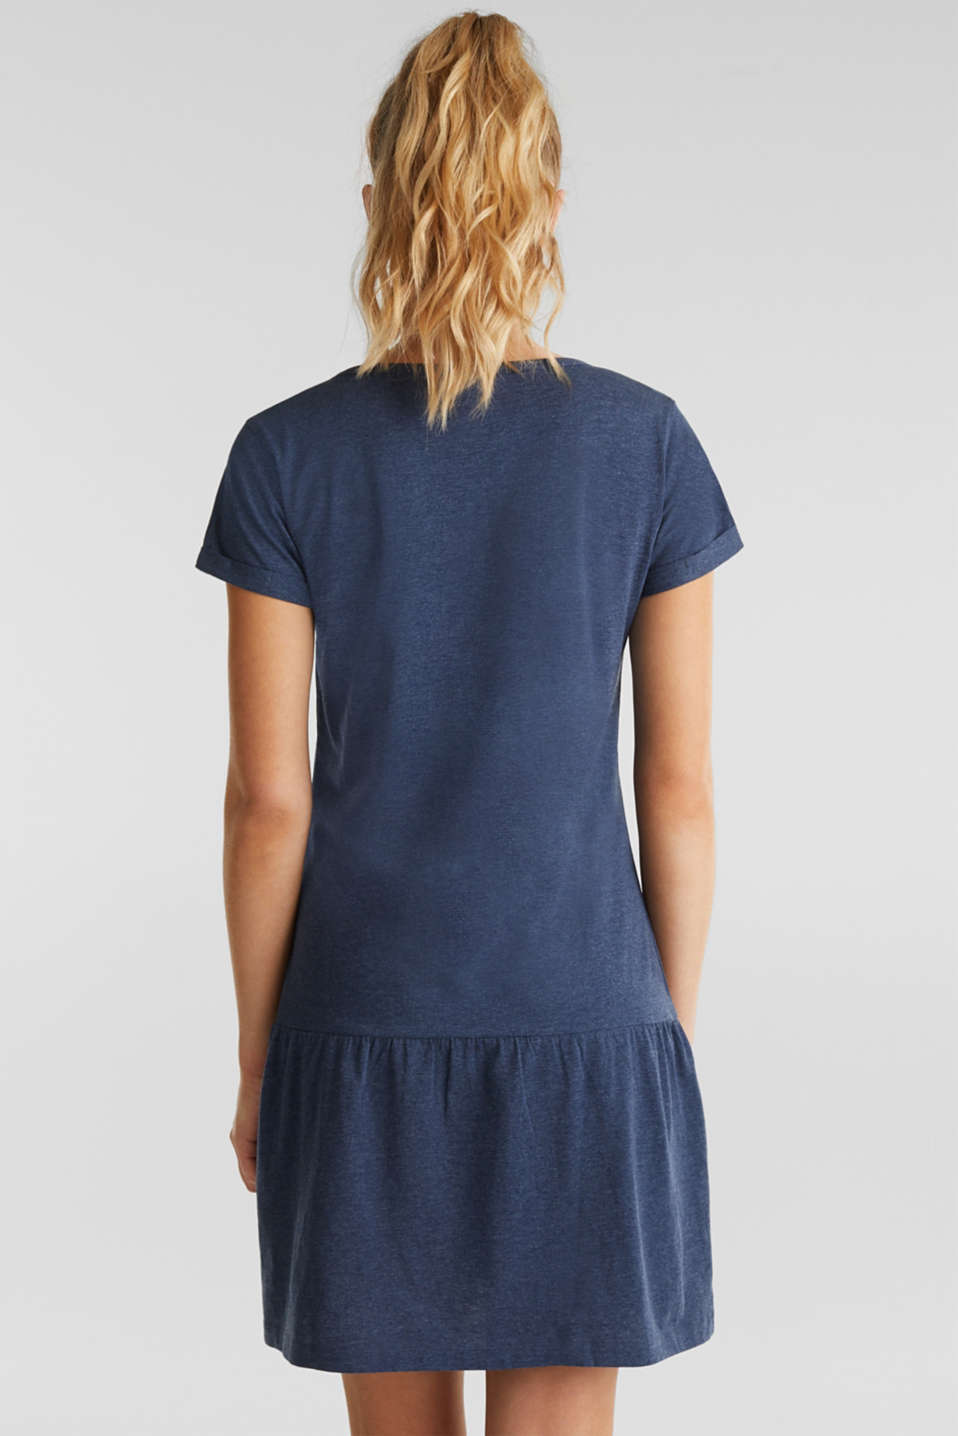 Jersey nightshirt with a print, NAVY 2, detail image number 1